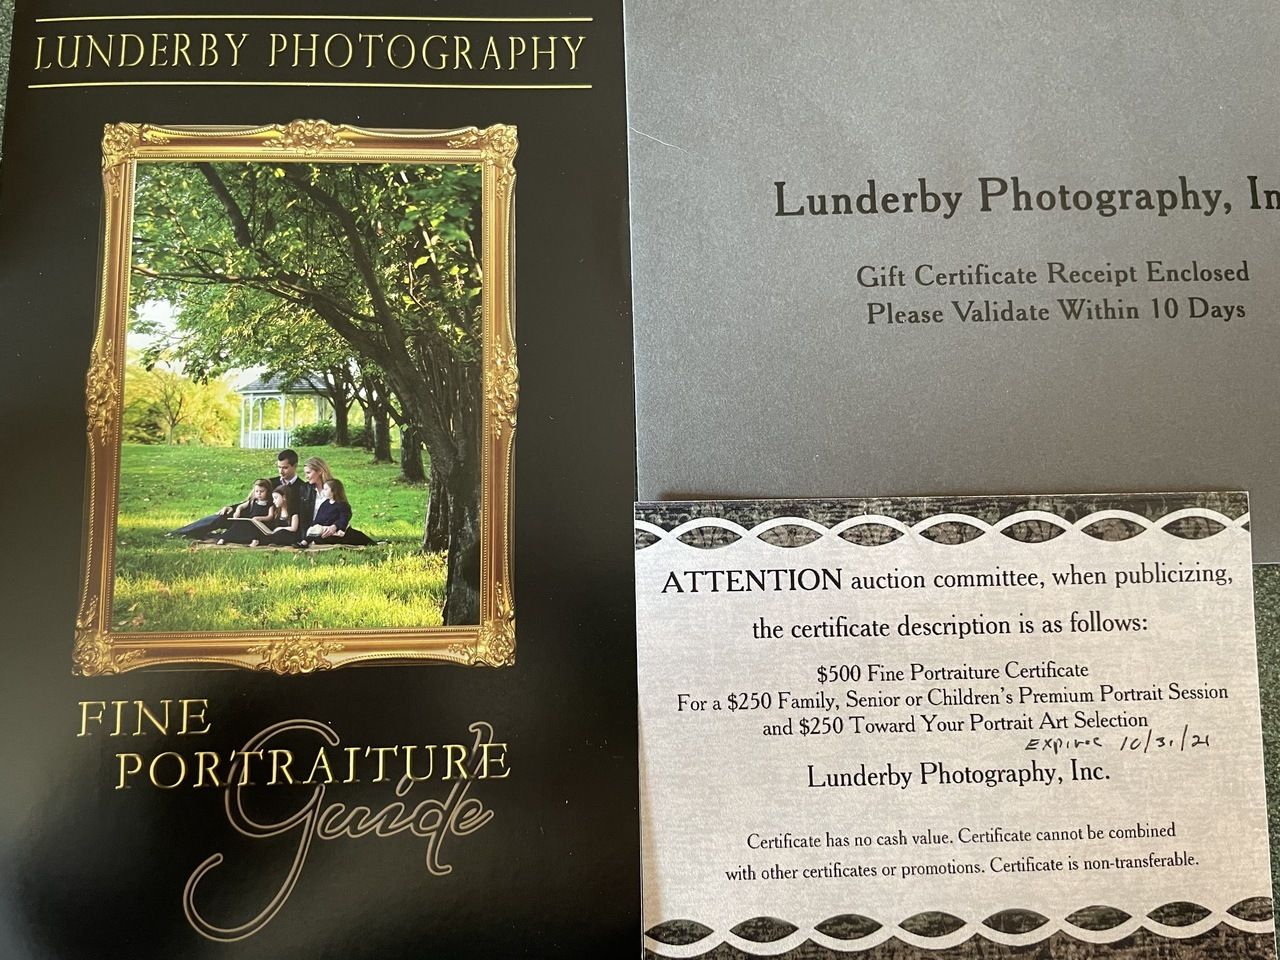 417. Lunderby Photography Package